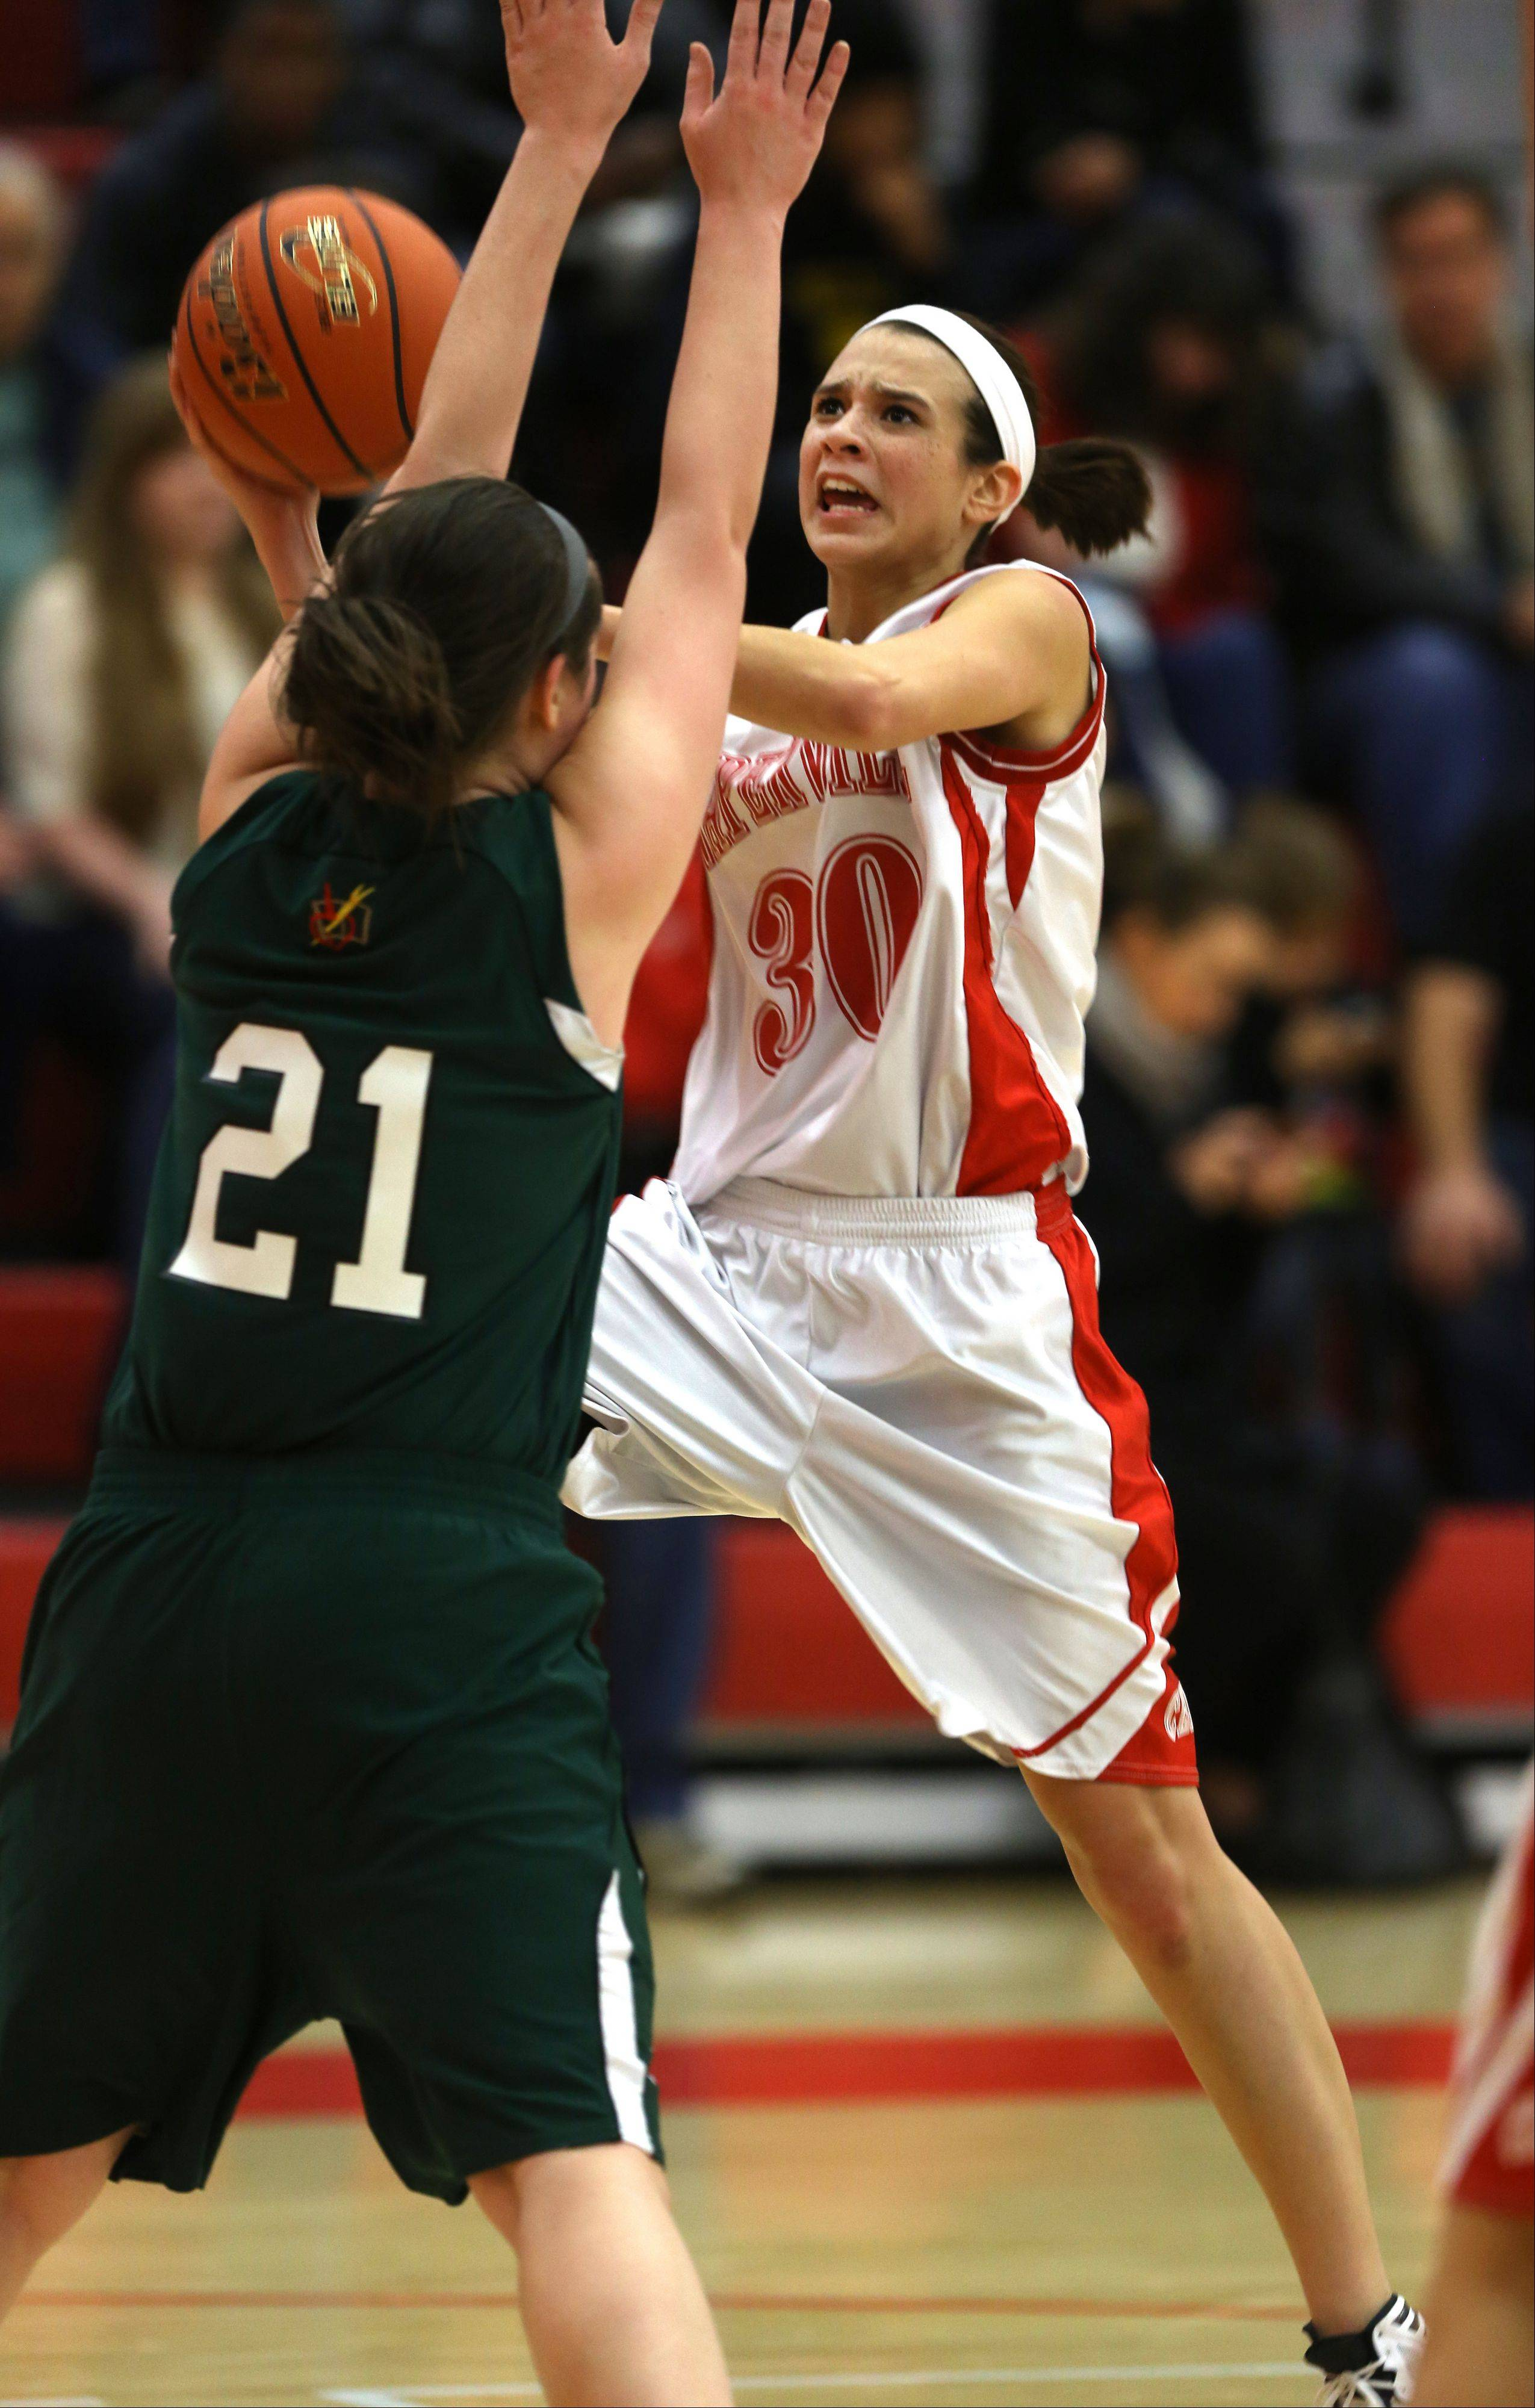 Naperville Central's Shannon Ryan drives the lane against Providence's Mary Fashingbauer (21), during the Tip-Off Tournament.